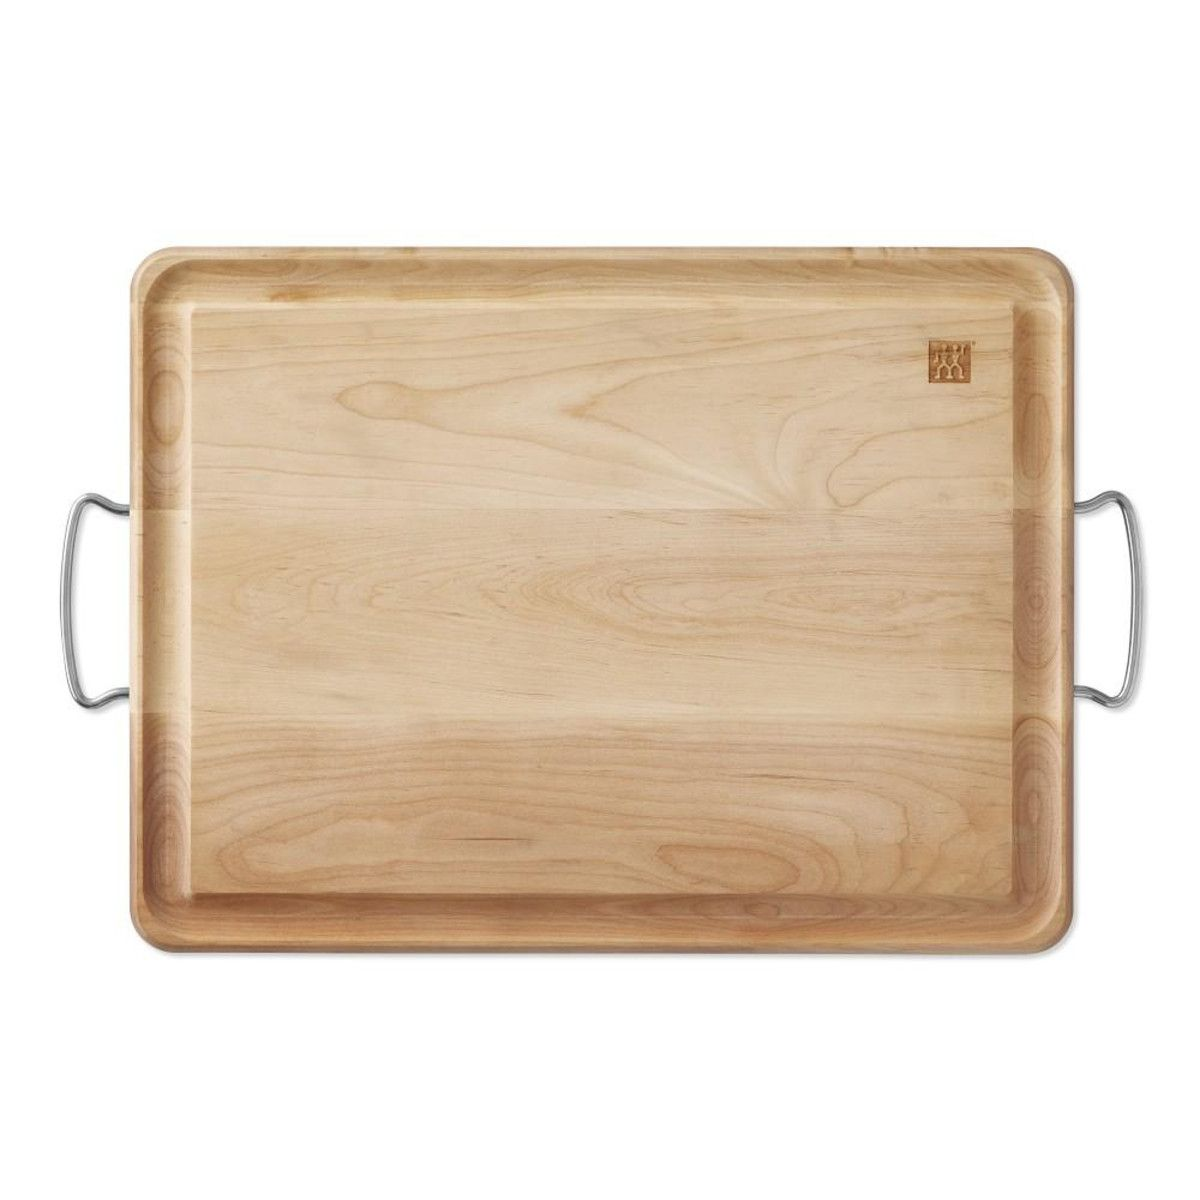 Zwilling JAHenckles Birchwood Carving Board with Handles